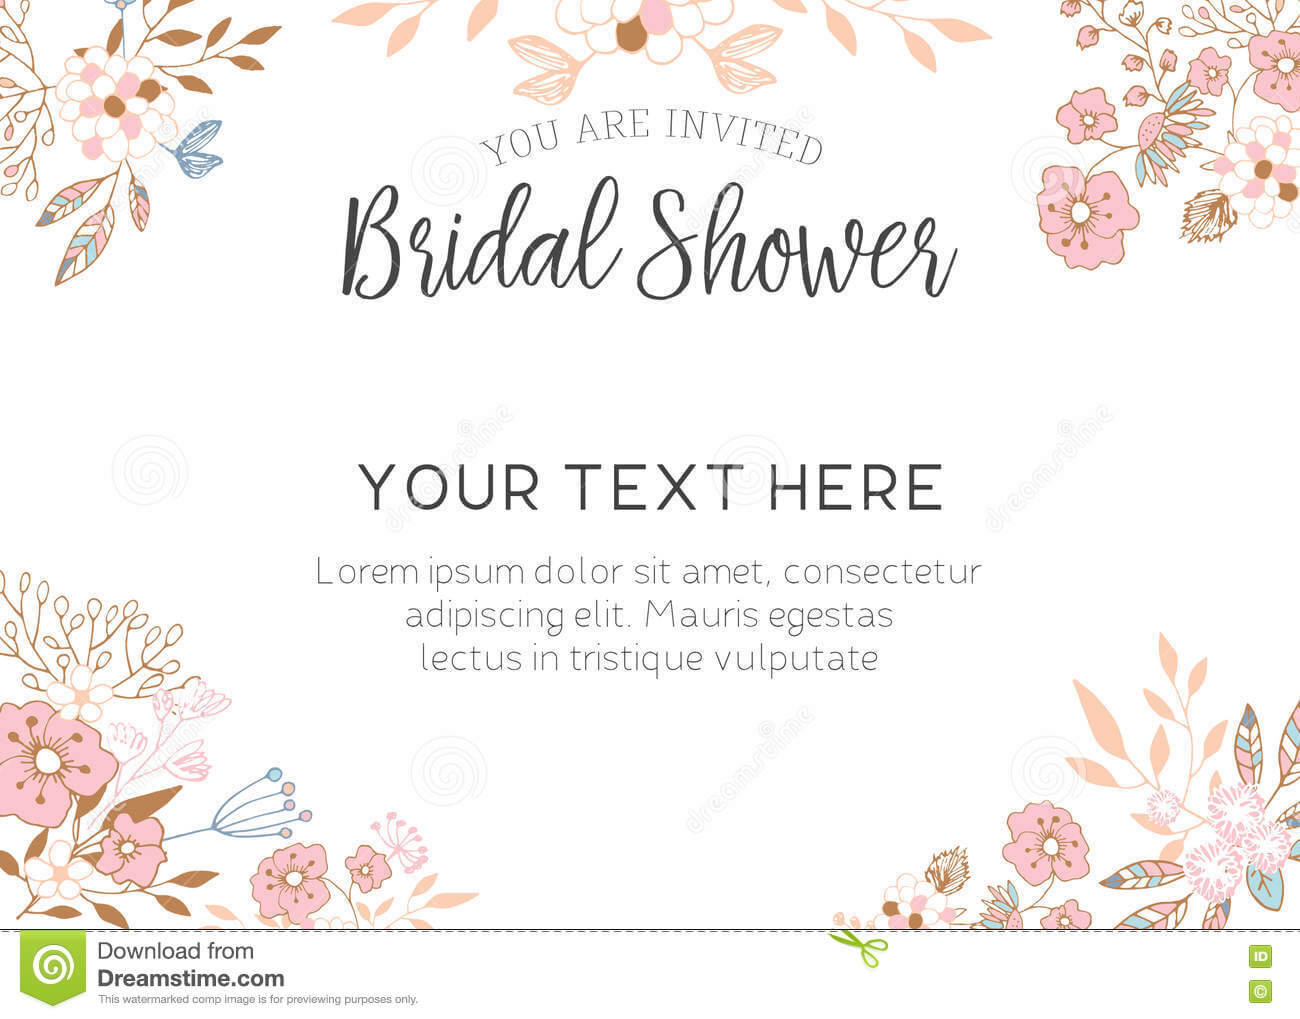 Bridal Shower Invitation Stock Illustration. Illustration Of Intended For Bridal Shower Invite Template